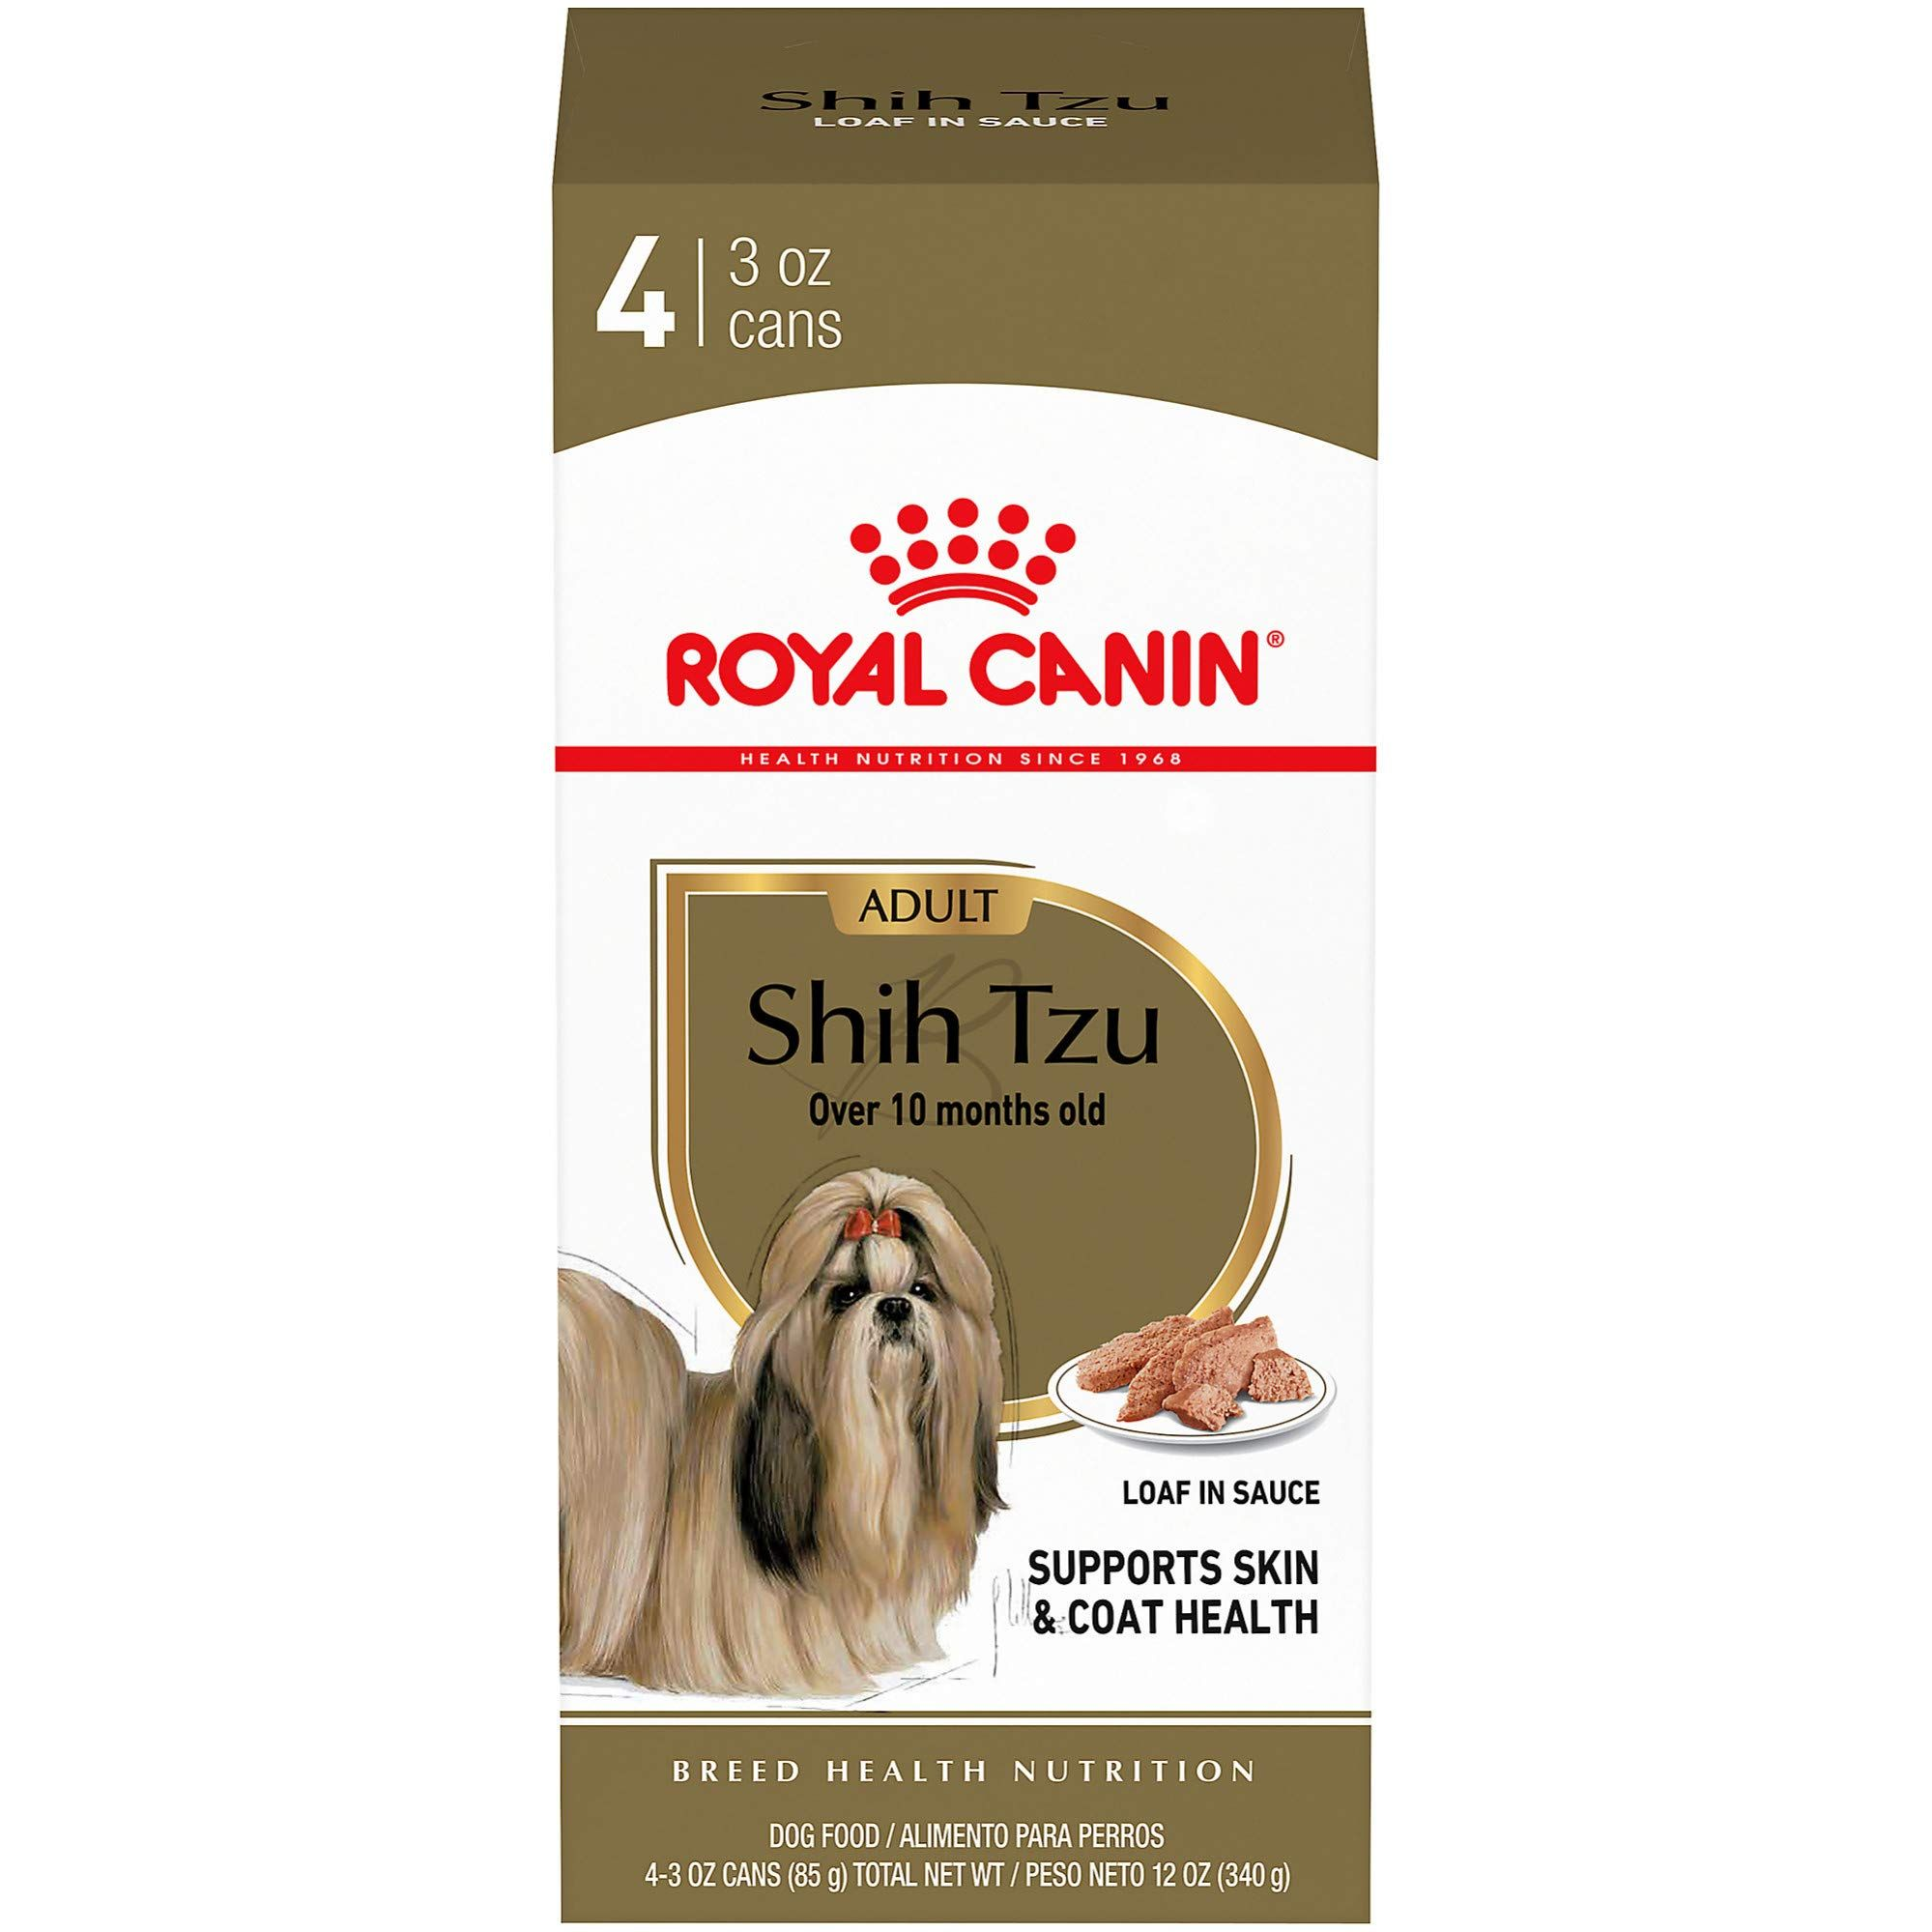 Royal Canin Breed Health Nutrition Shih Tzu Loaf In Sauce Food For Dogs Find Out More About The Great Product In 2020 Wet Dog Food Dog Food Recipes Canned Dog Food